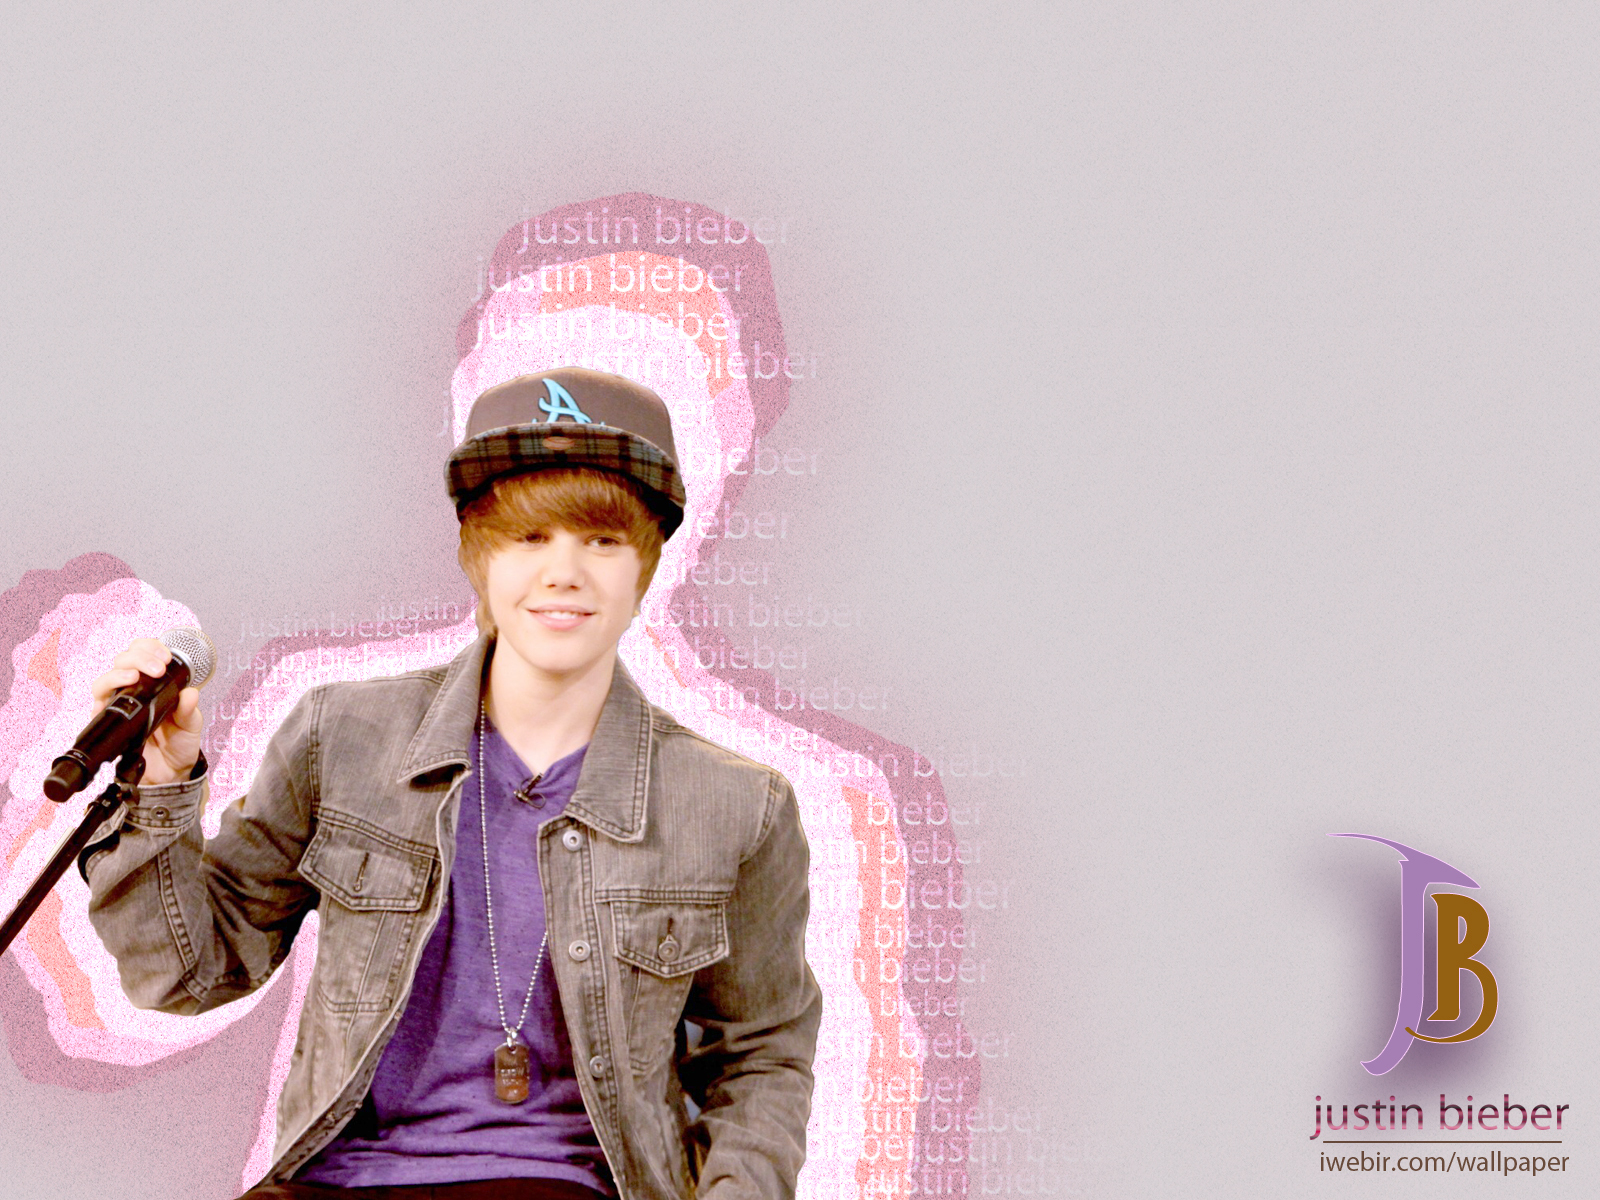 Justin Bieber wallpapers purple t shirt